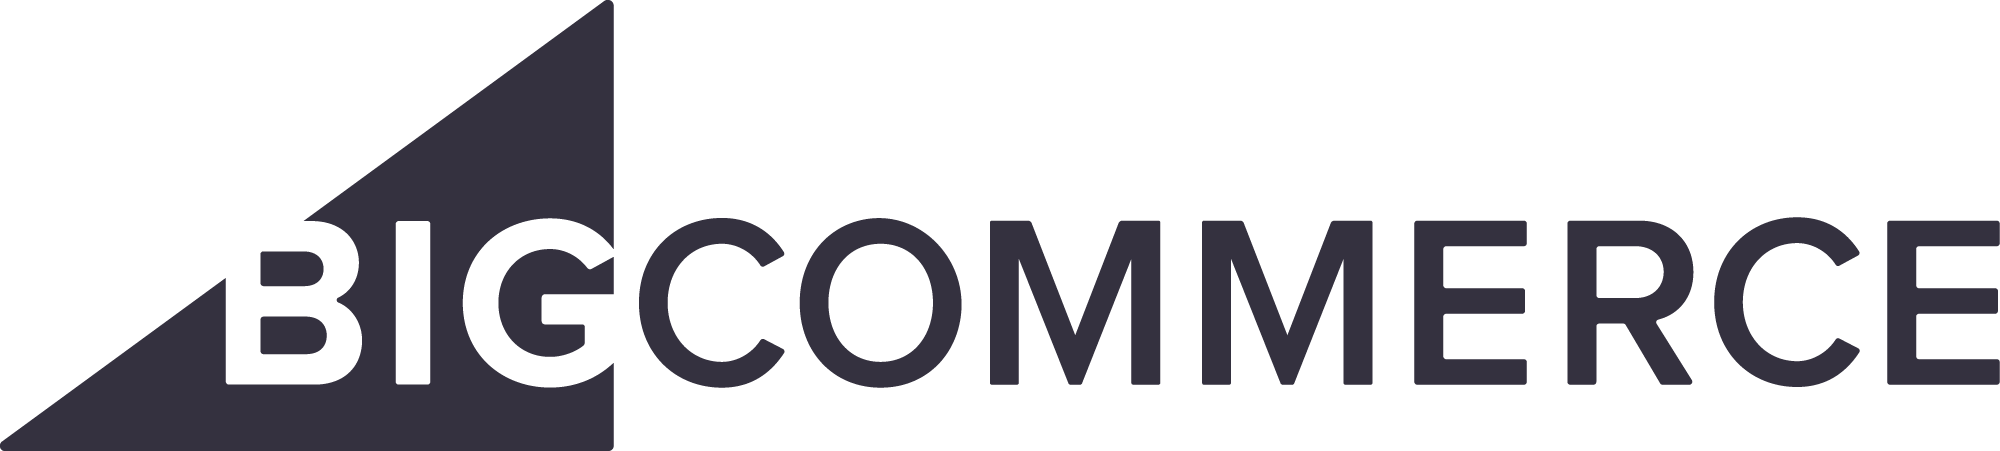 Bigcommerce Partner Badge